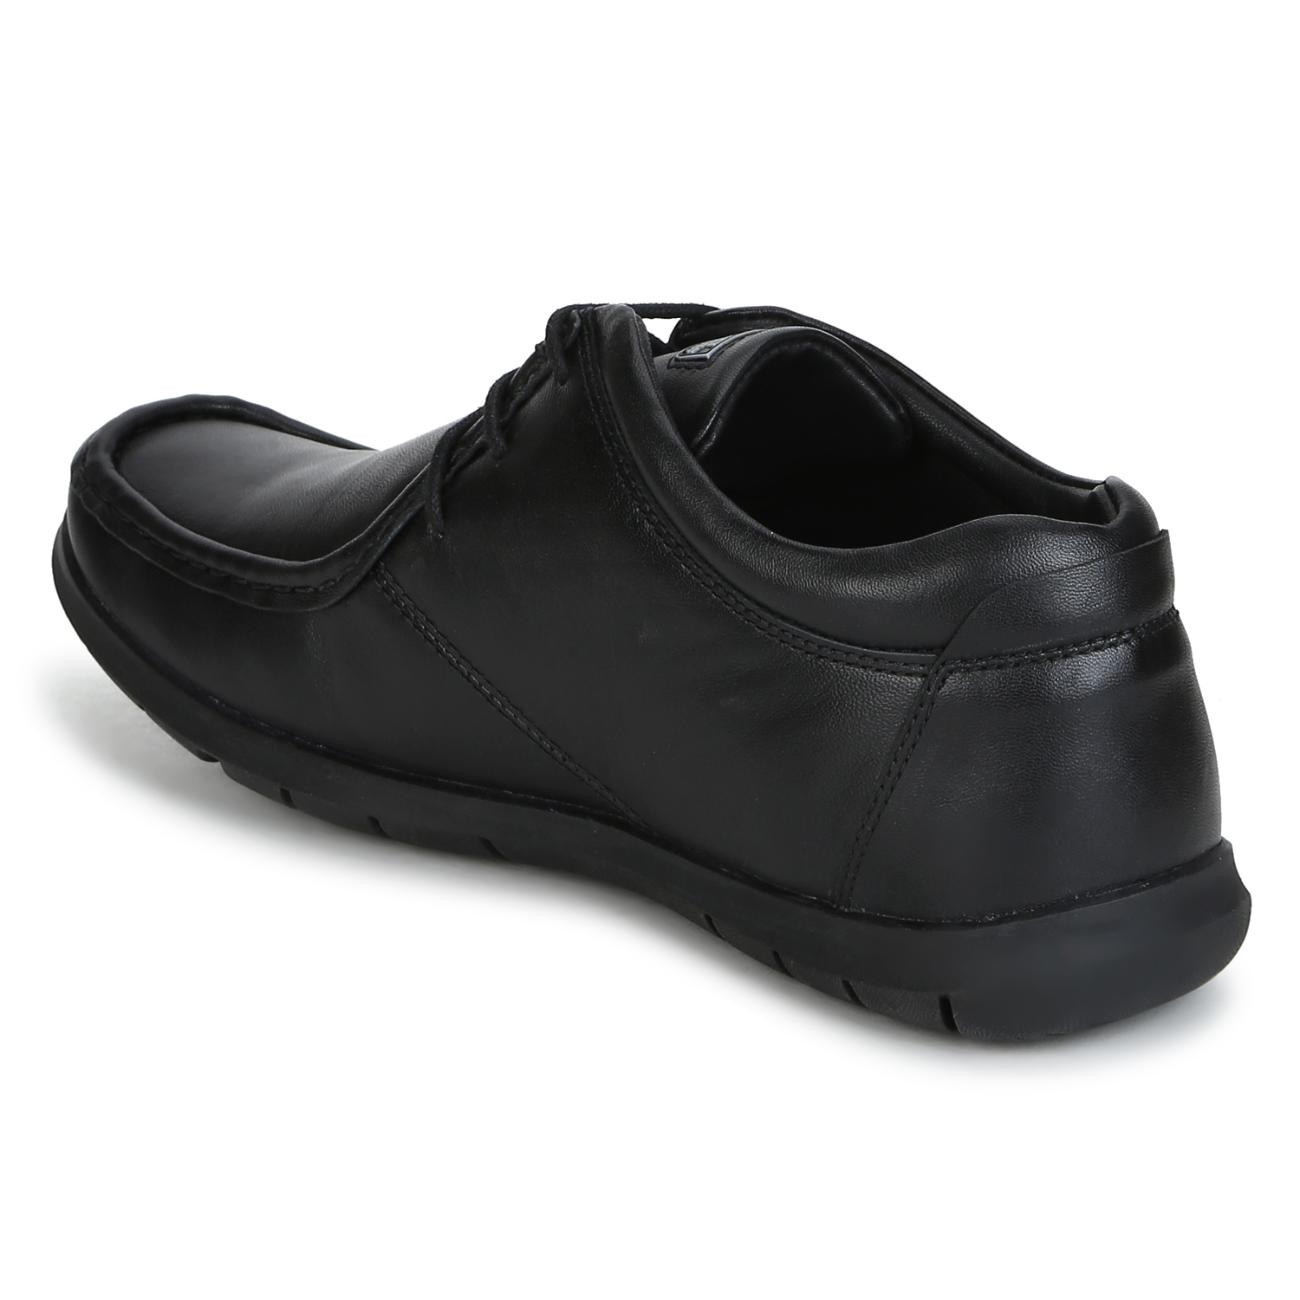 buy black leather lace up formal shoes side view_1